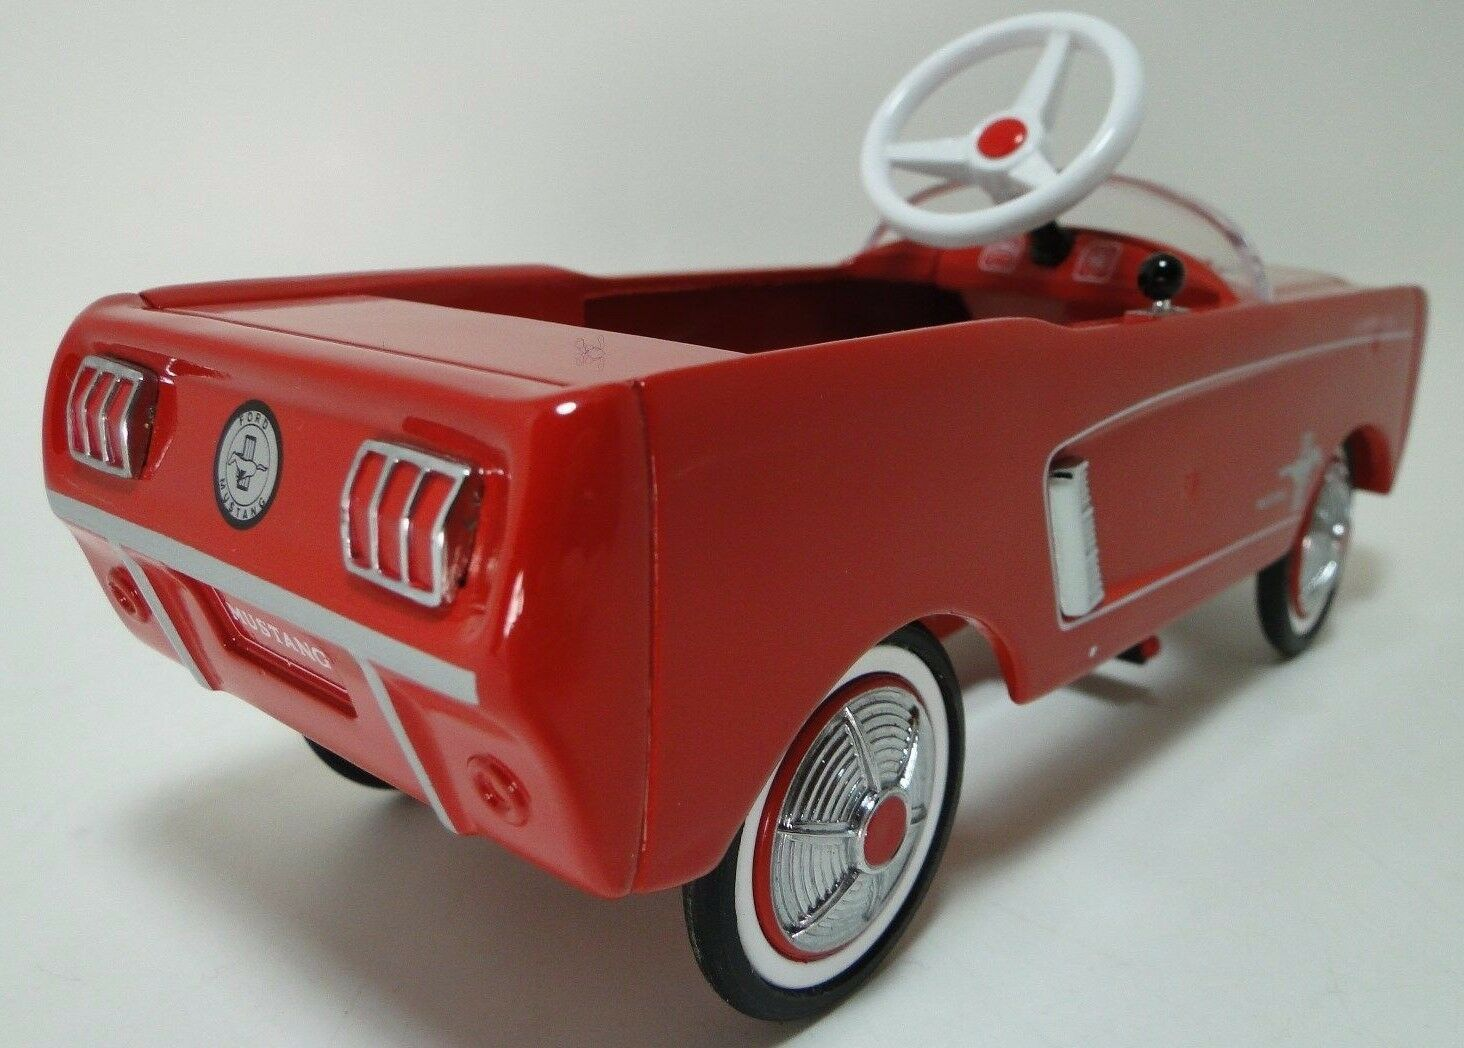 Pedal Car 1964 Mustang Ford Vintage Metal Collector Model READ Length 6.5 Inches